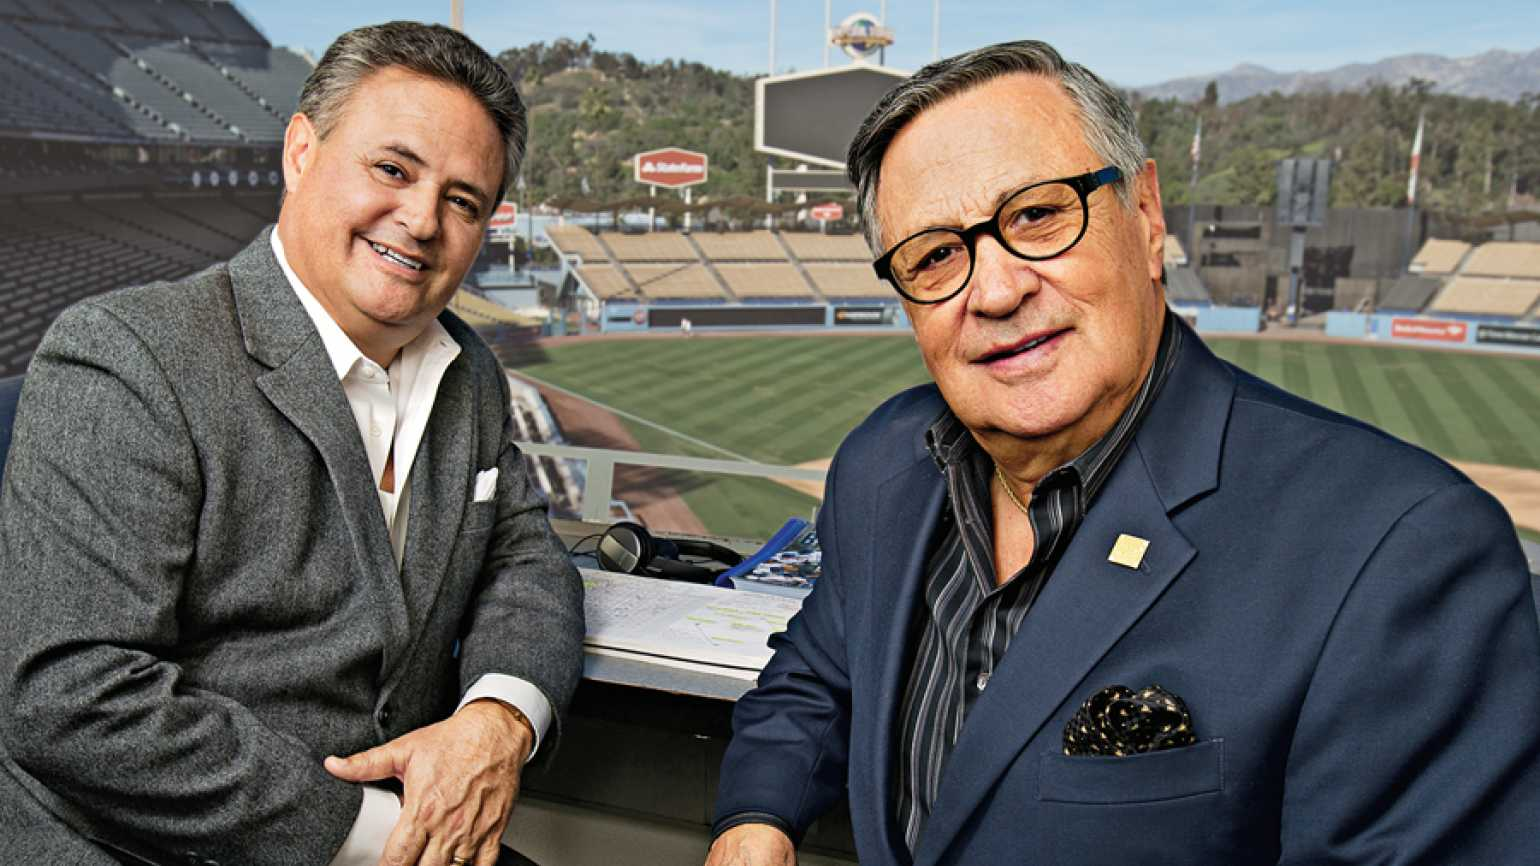 Jorge and Jaime Jarrin, father-and-son Spanish-language broadcasters for the Dodgers